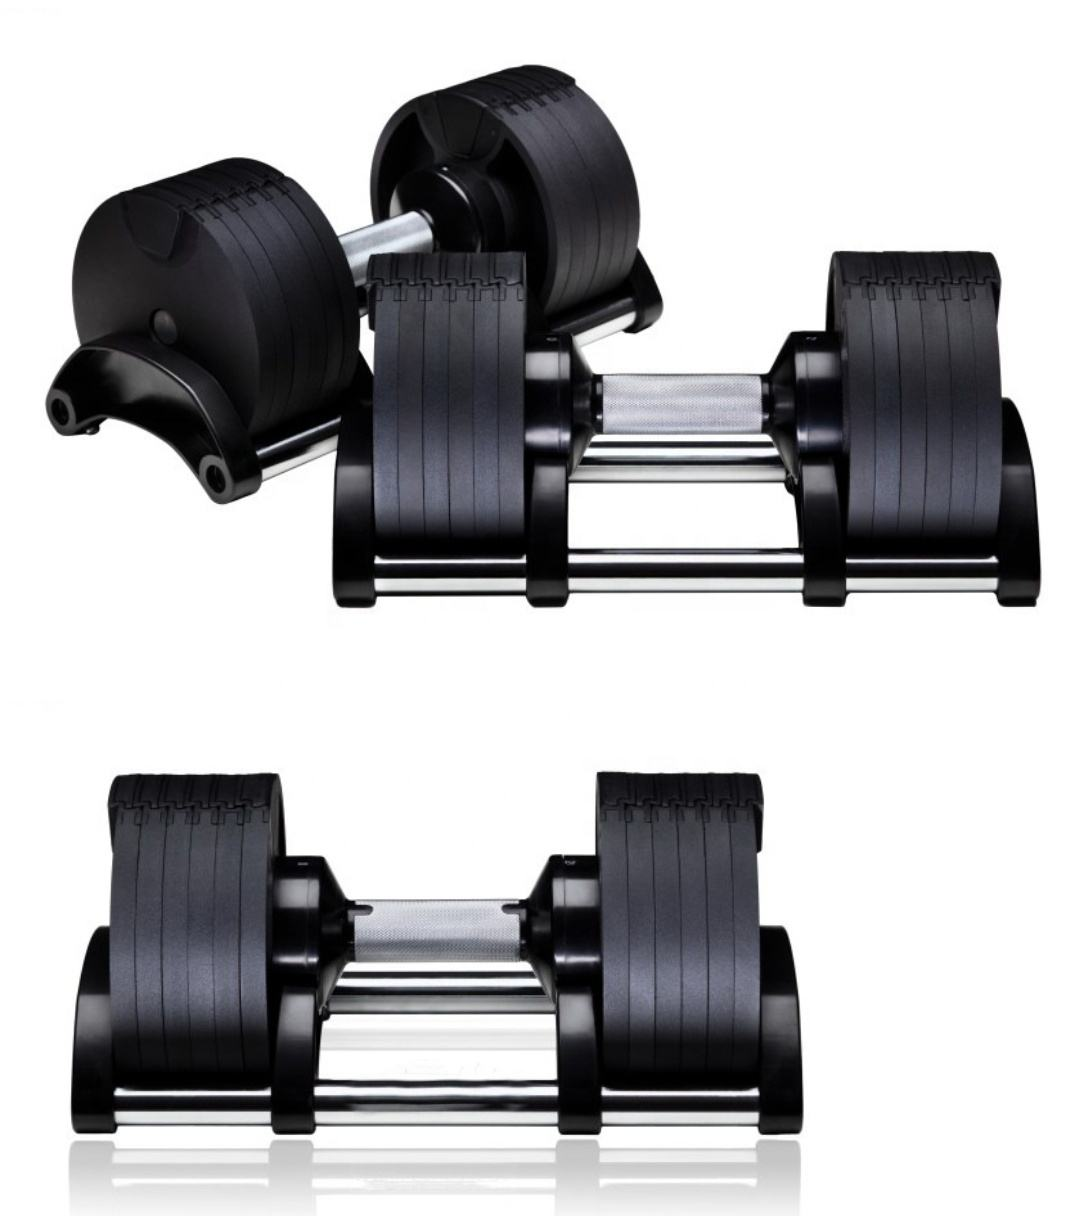 The Home Gym Equipment Adjustable Dumbbell Set Fitness 24or40kg